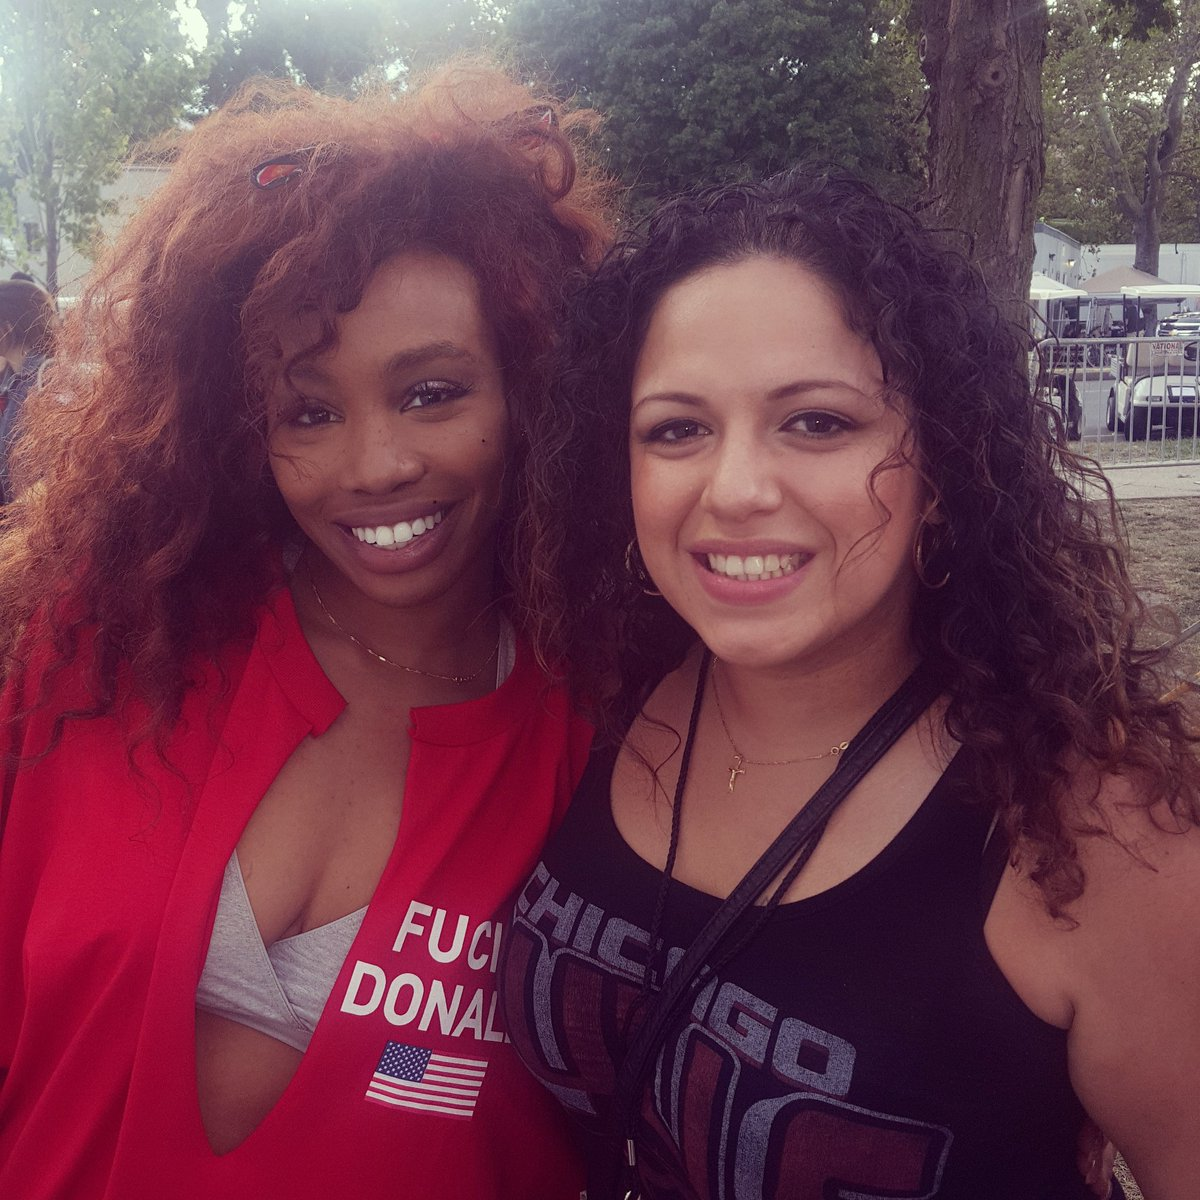 Ran into @sza from jersey at #MadeInAmerica #tde https://t.co/ZMf7GiOoqX